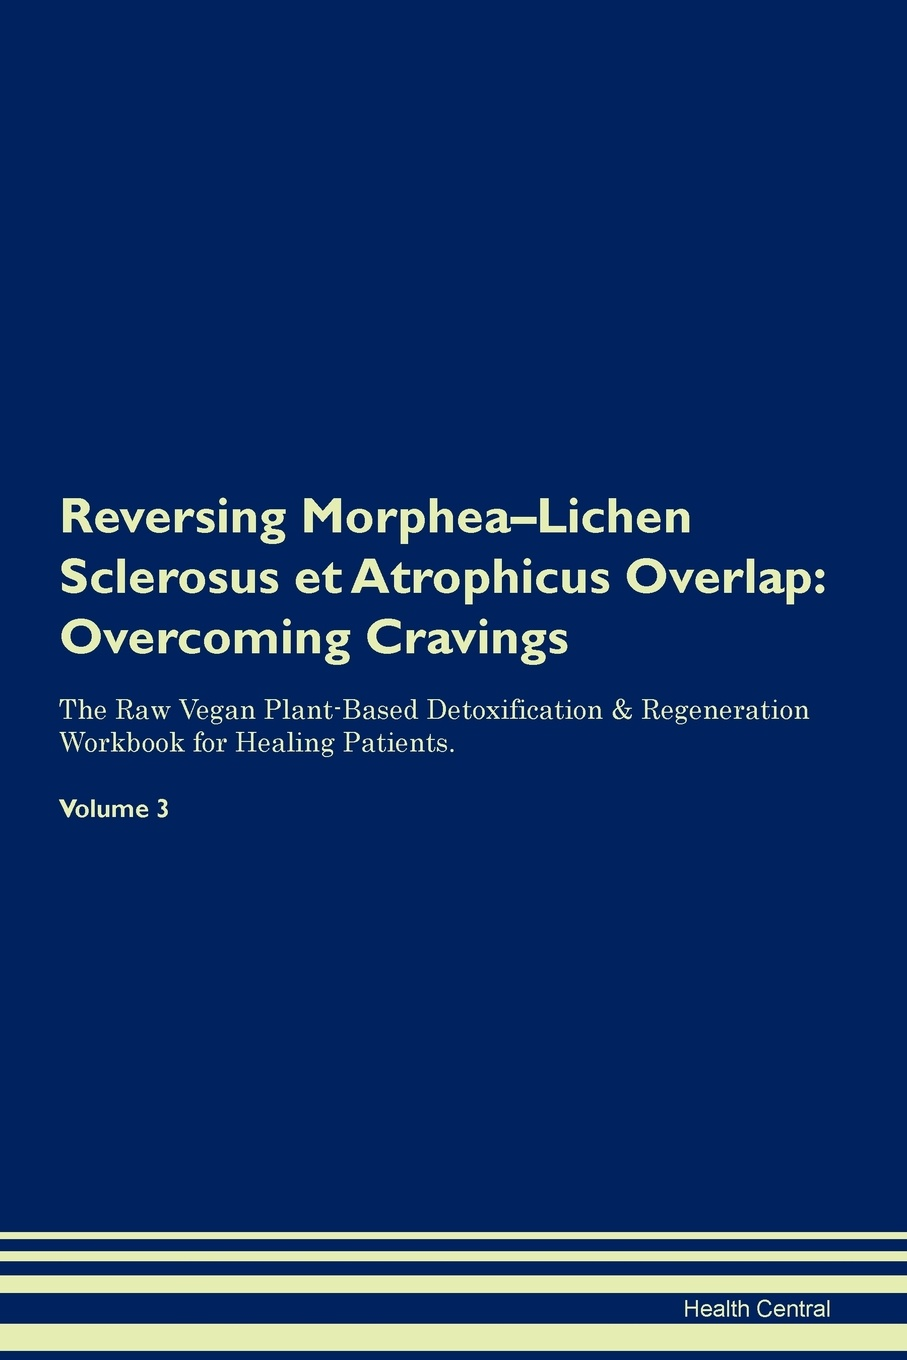 Health Central Reversing Morphea-Lichen Sclerosus et Atrophicus Overlap. Overcoming Cravings The Raw Vegan Plant-Based Detoxification & Regeneration Workbook for Healing Patients. Volume 3 health central reversing lichen sclerosus overcoming cravings the raw vegan plant based detoxification regeneration workbook for healing patients volume 3